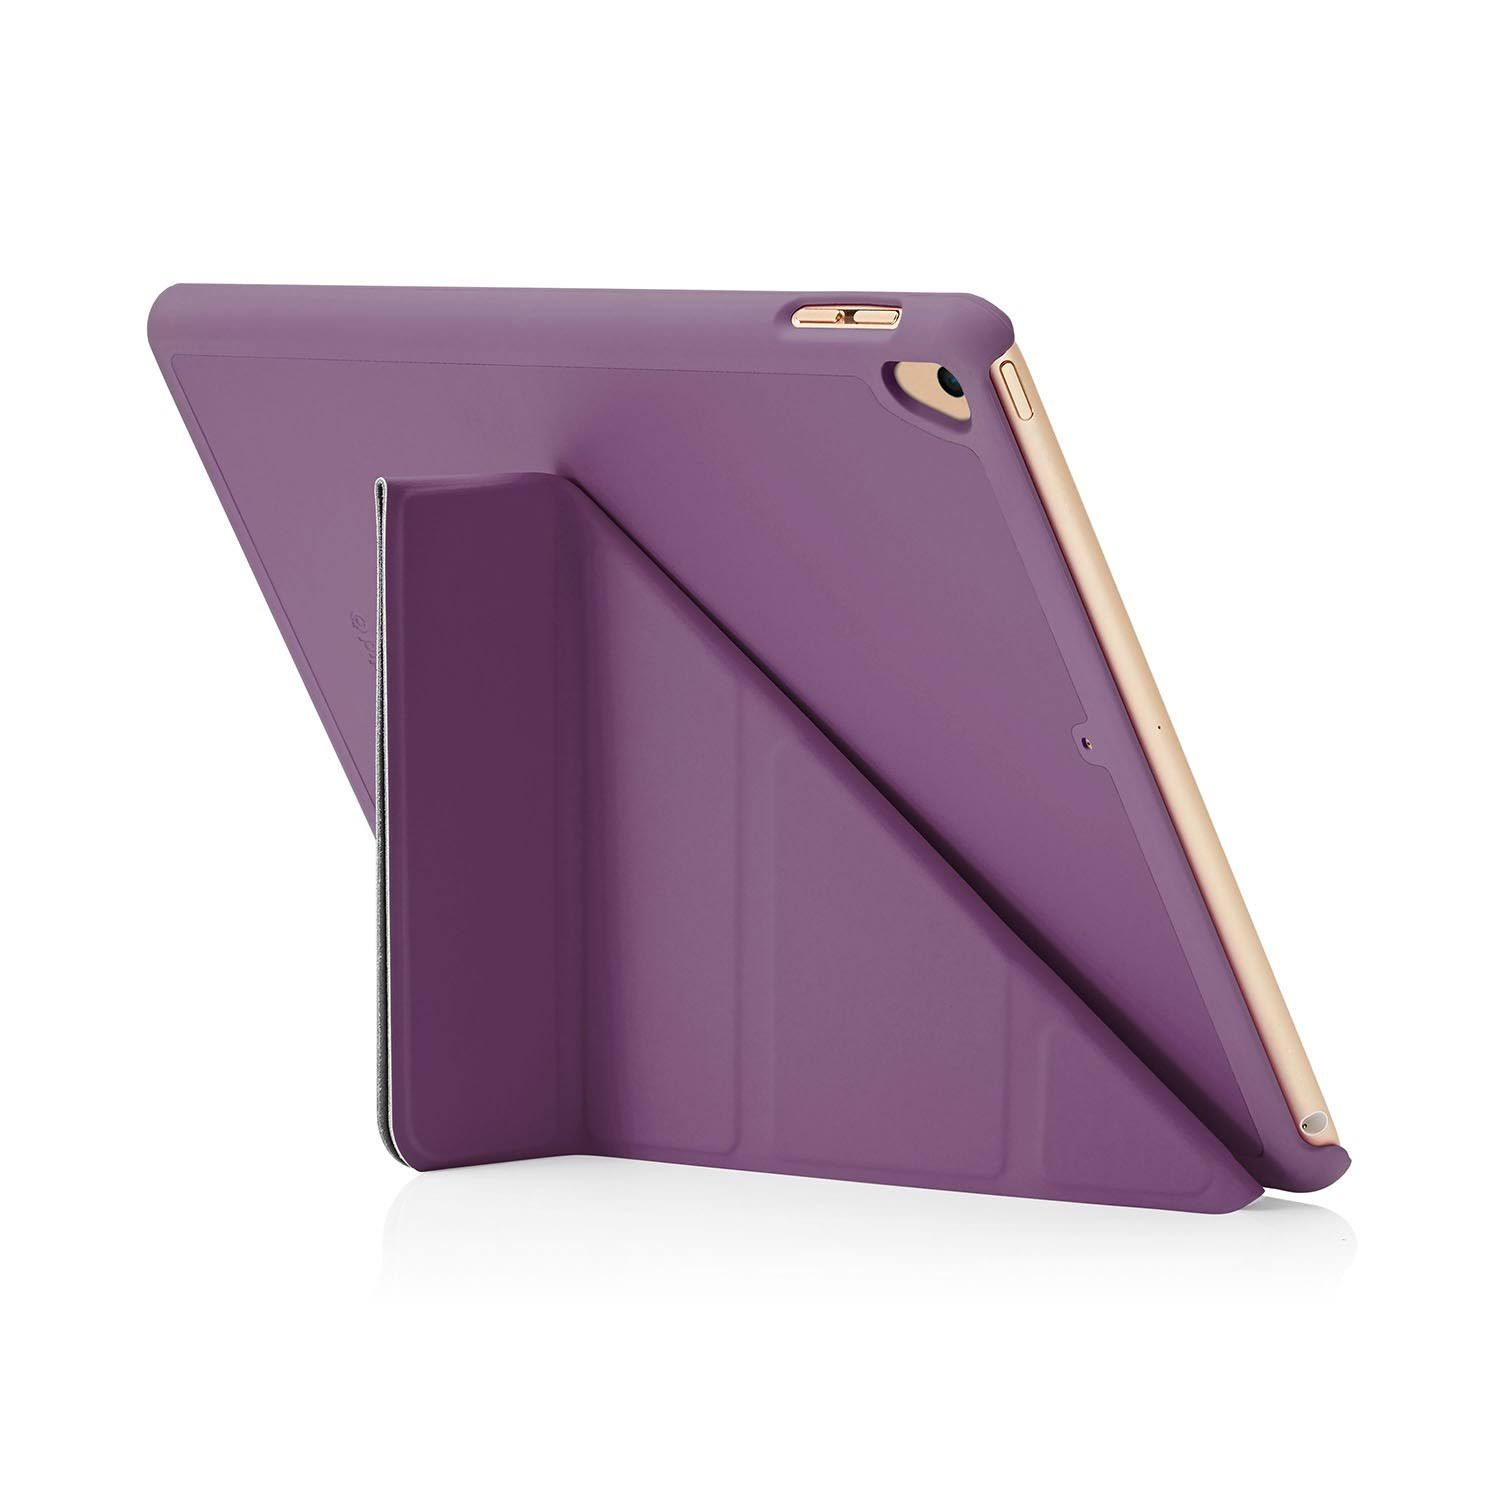 Pipetto Origami 9.7 Folio Purple iPad 9.7 (2017) Case Origami, P0